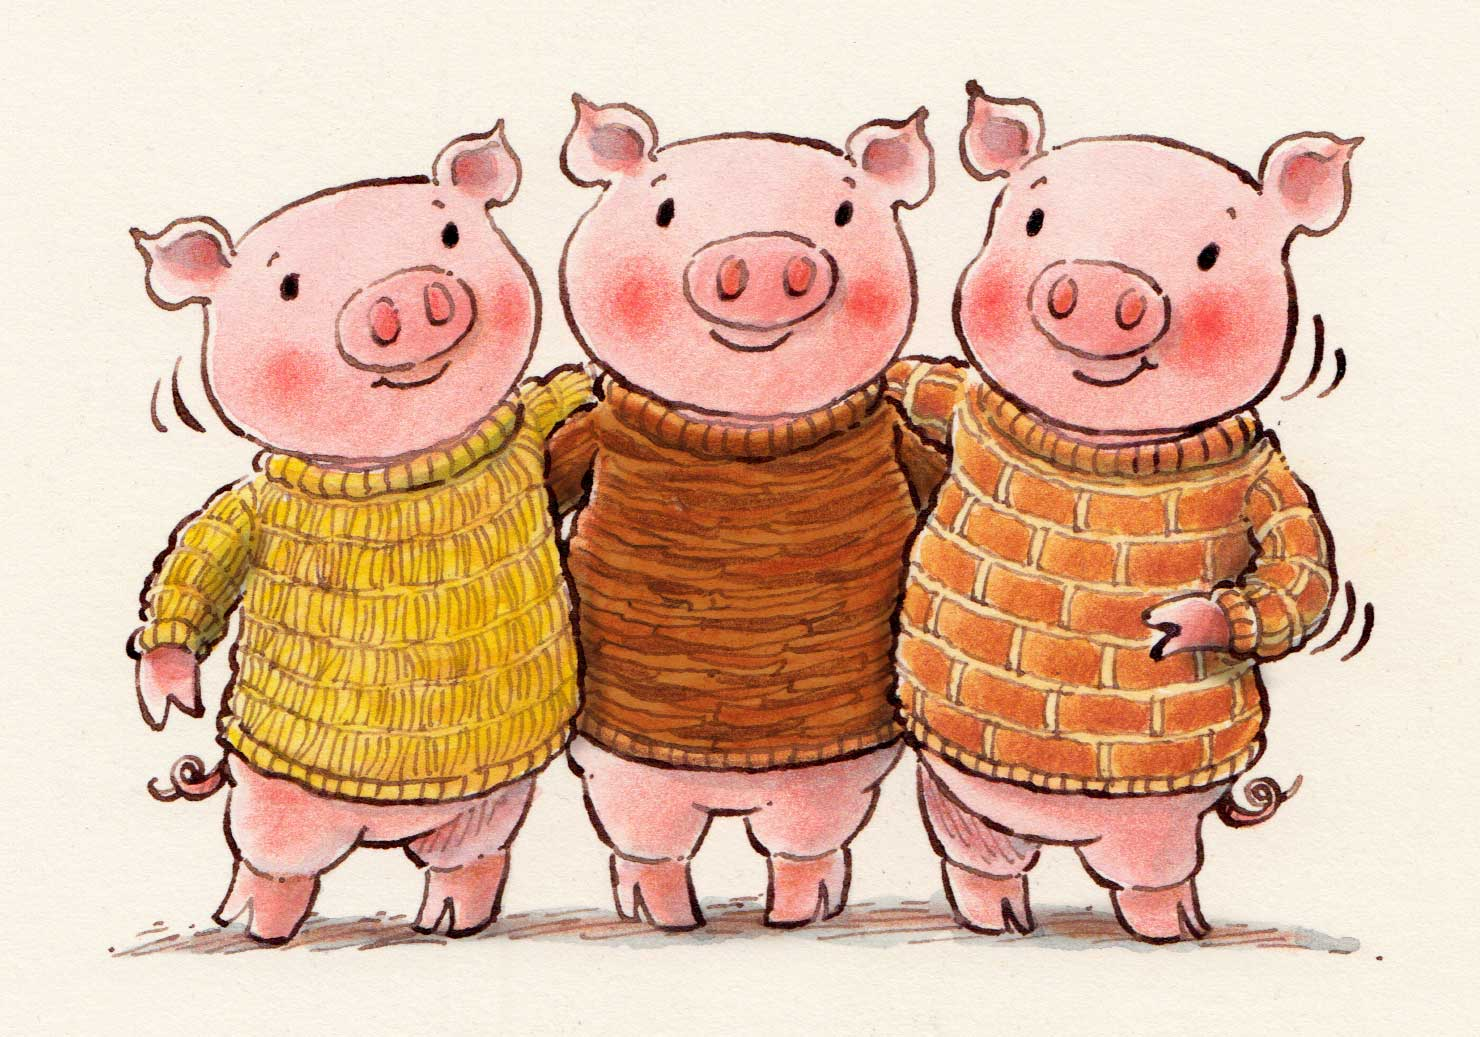 The Three Little Pigs is a fable about three pigs who build three houses of different materials A Big Bad Wolf blows down the first two pigs houses made of straw